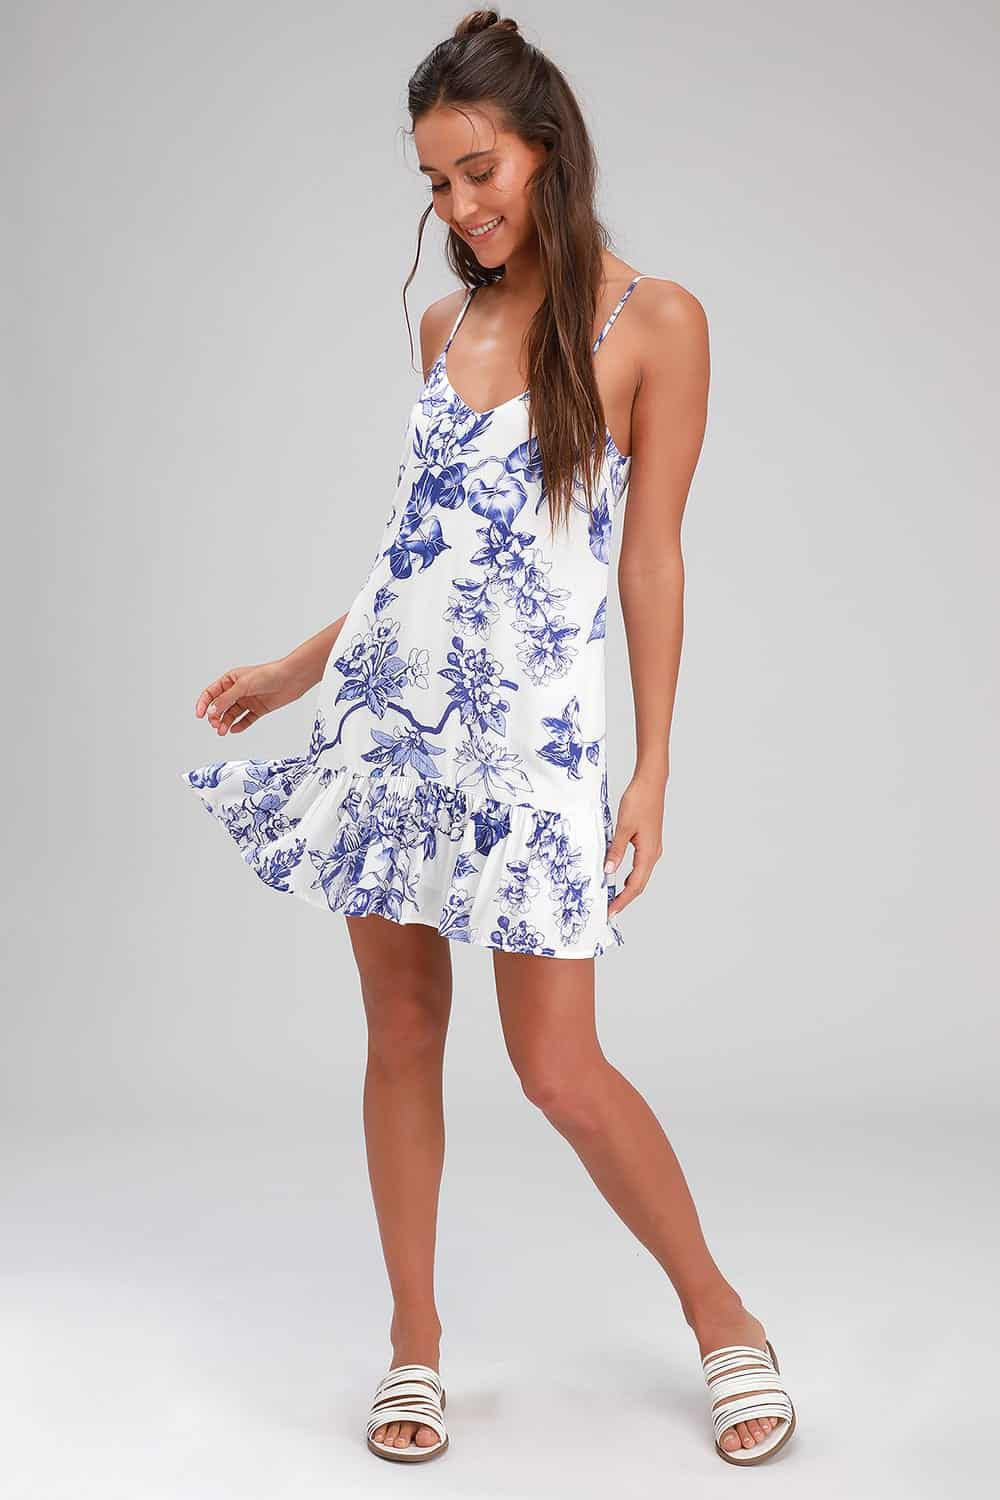 Summer Honeymoon Outfits for Her Blue And White Floral Print Ruffled Shift Dress